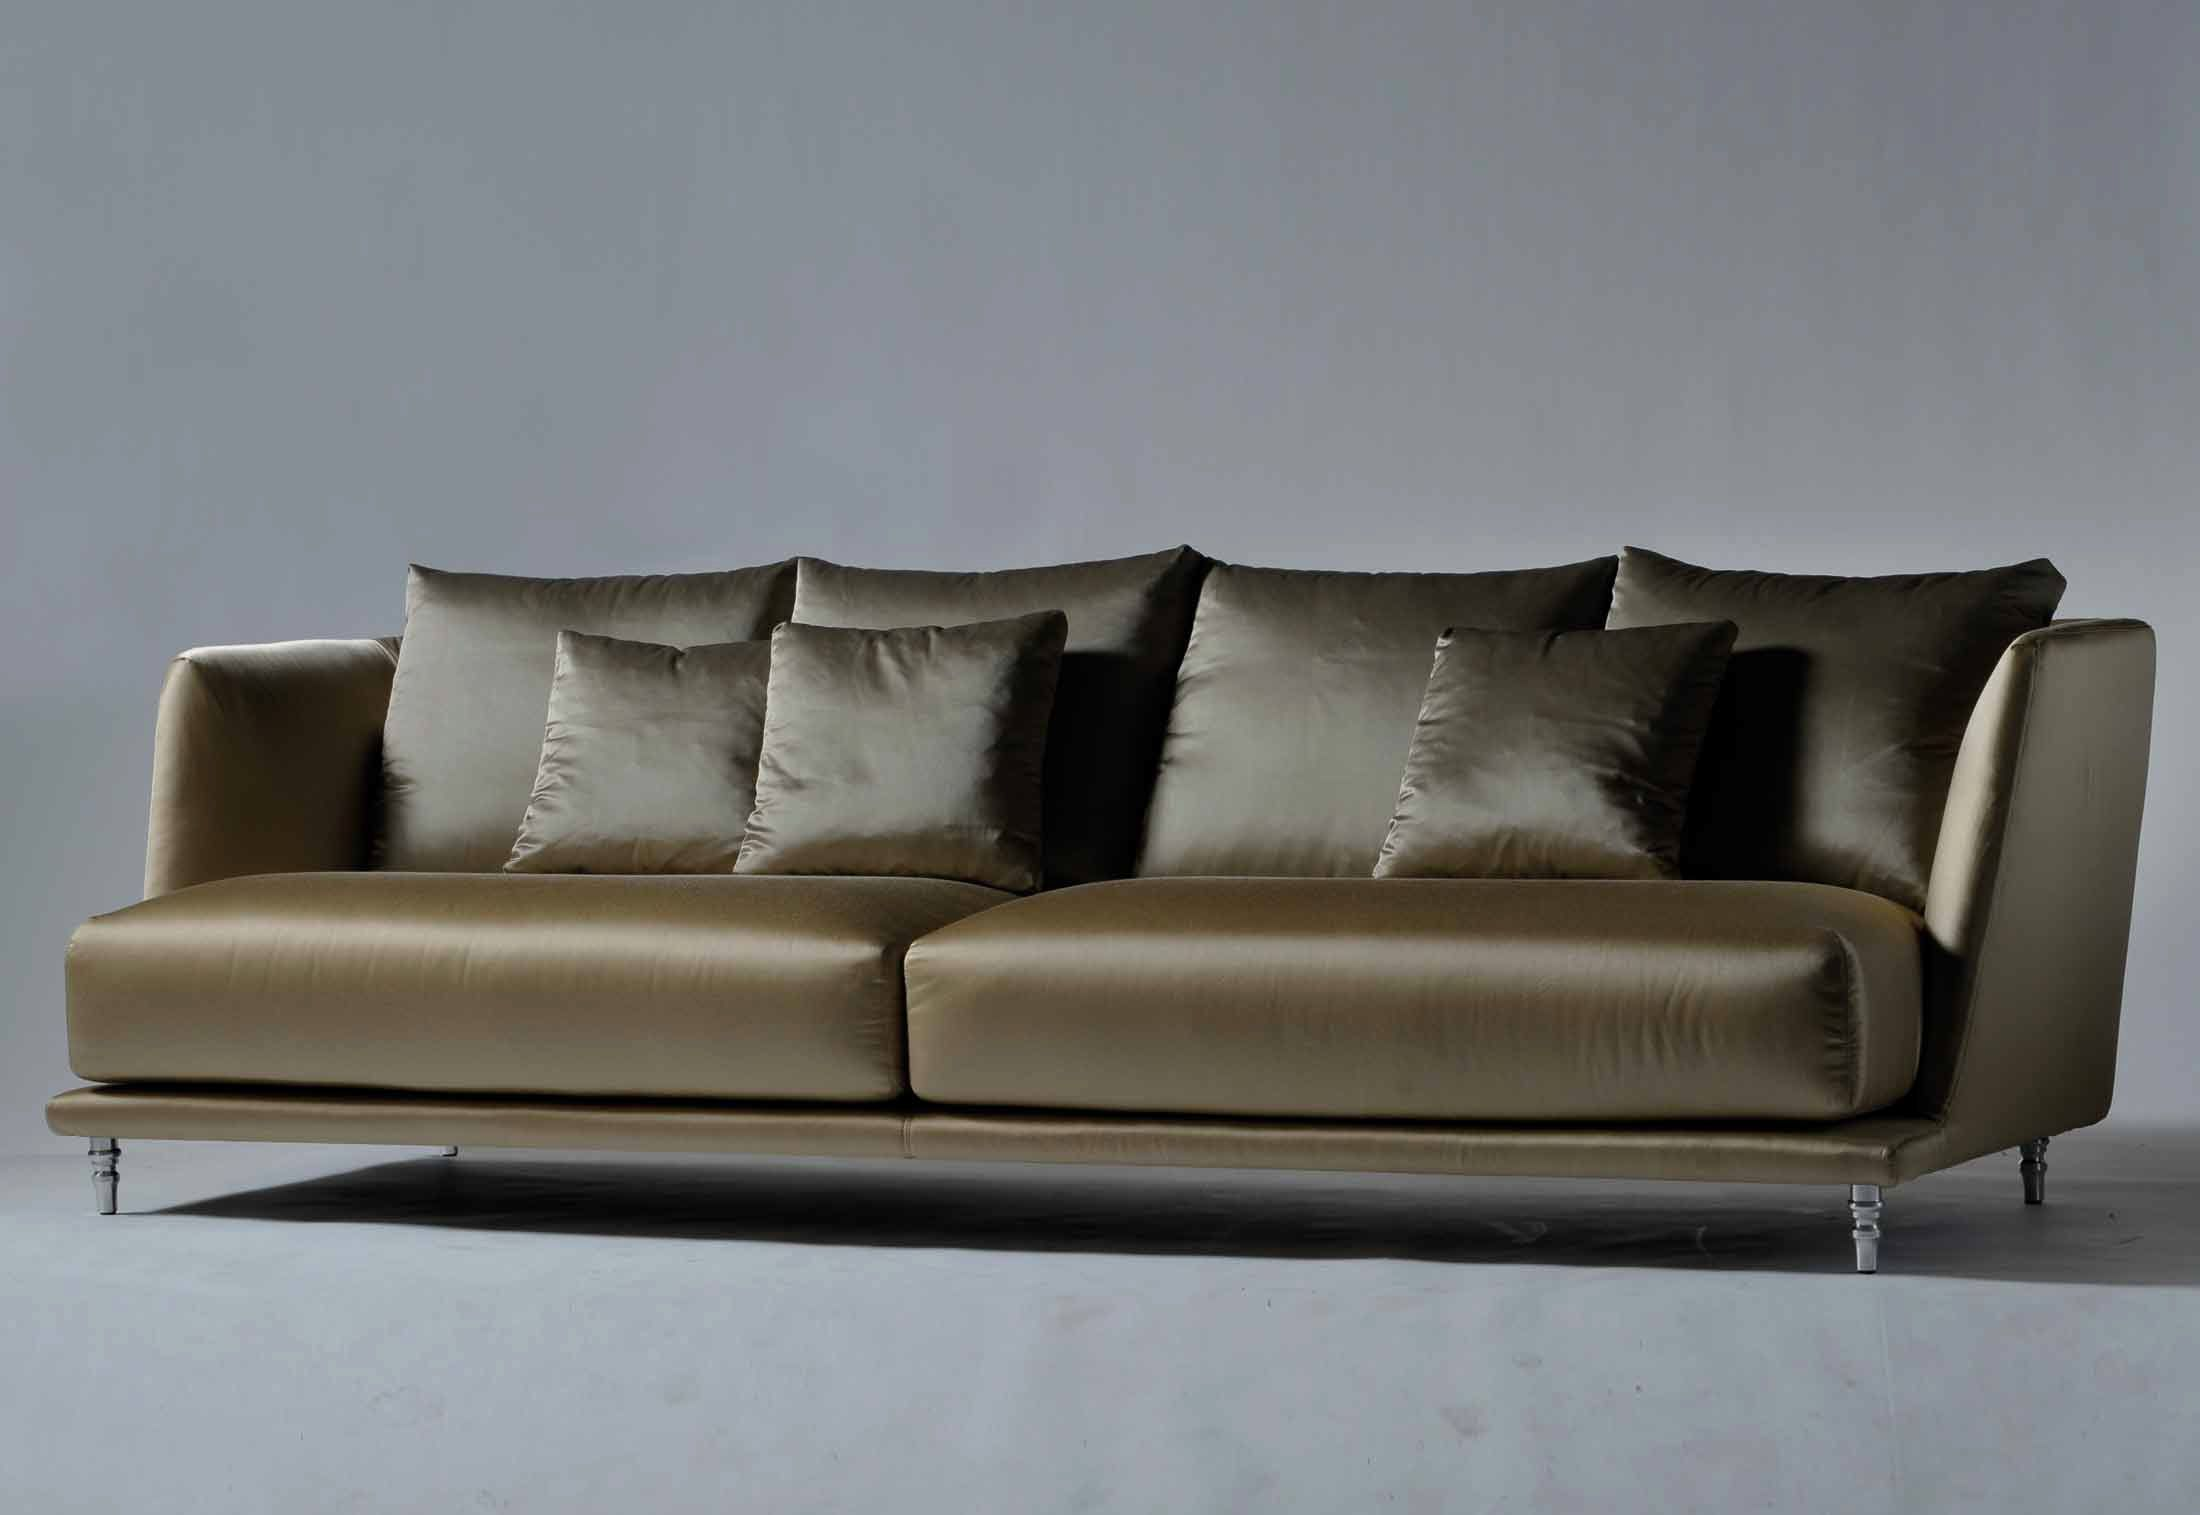 Inspirational Armani Sofa Set Image